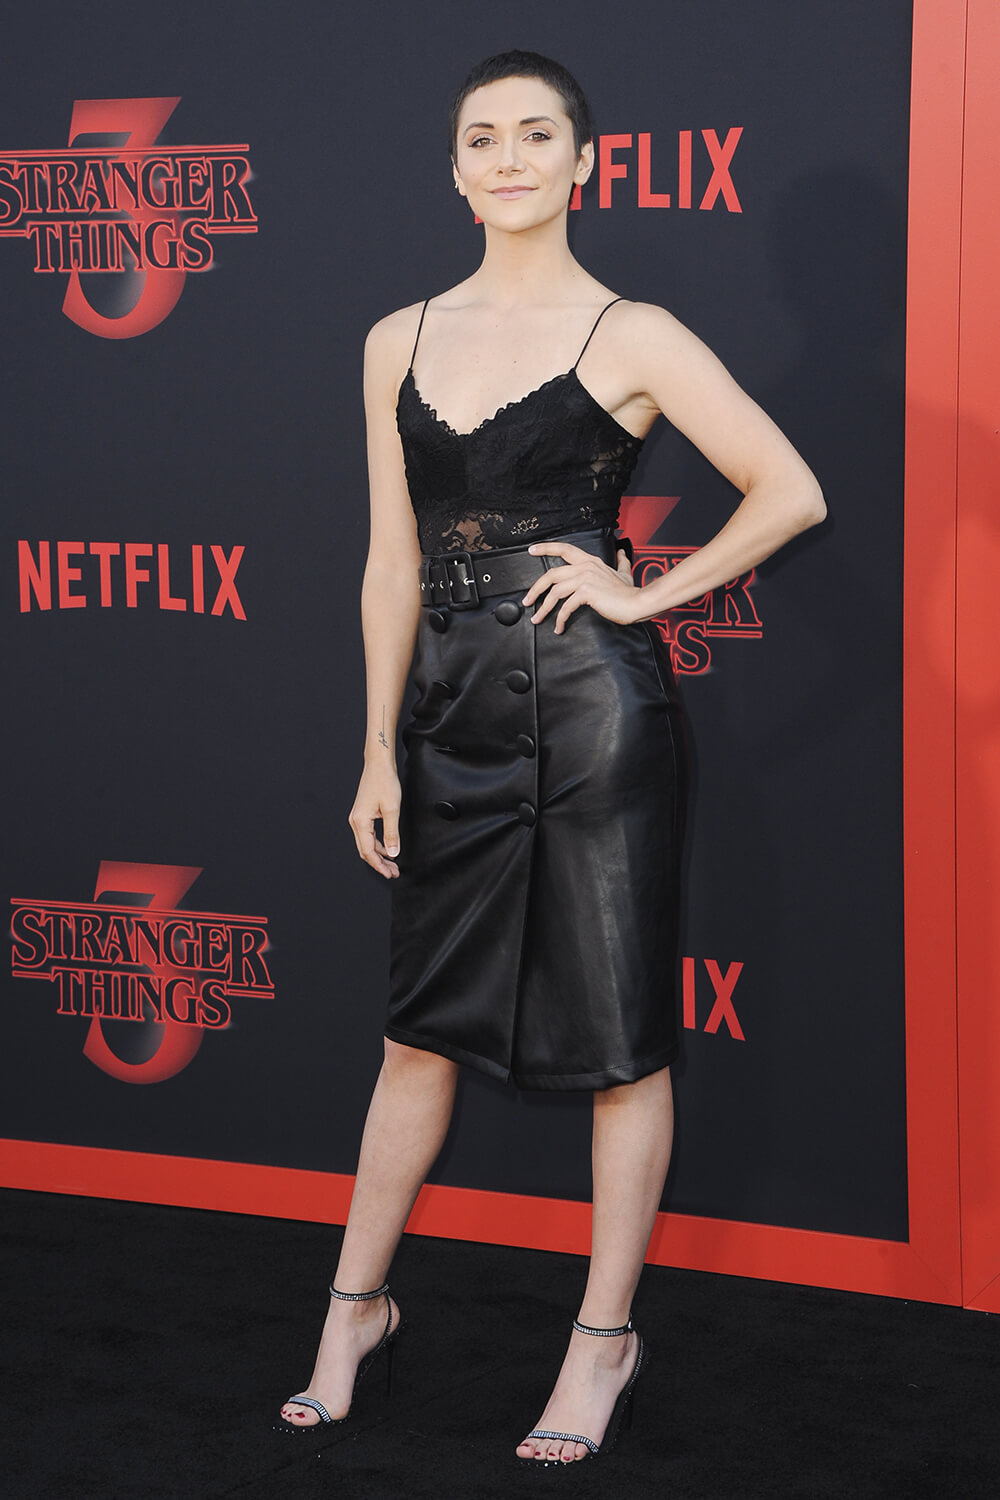 Alyson Stoner attends Stranger Things season 3 premiere